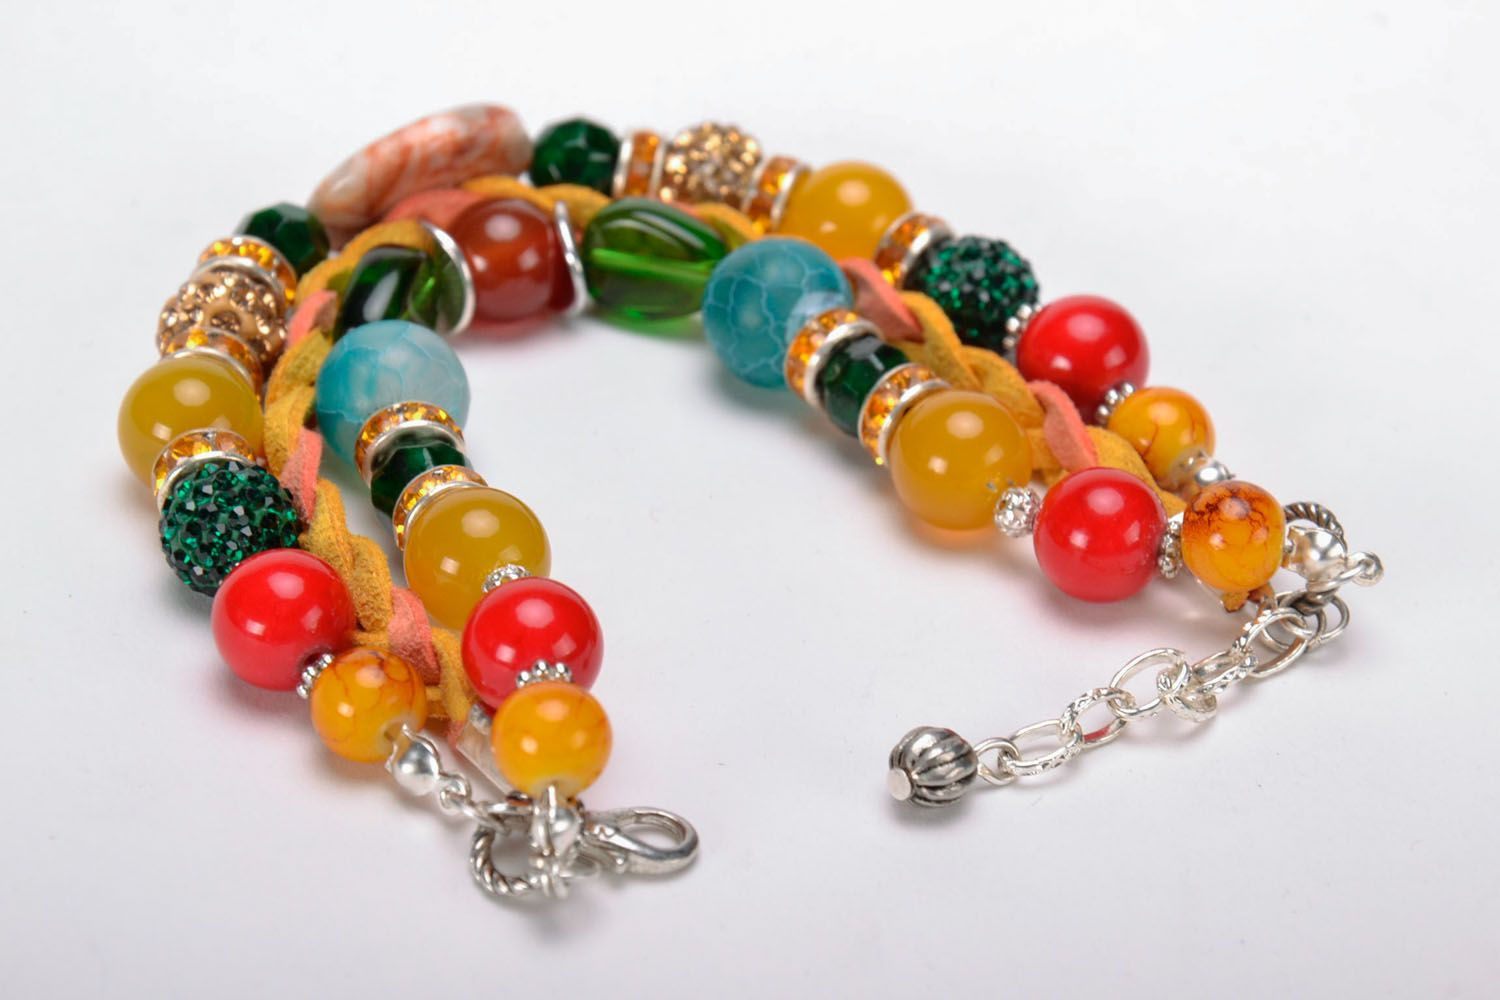 Bracelet made of natural stones photo 2